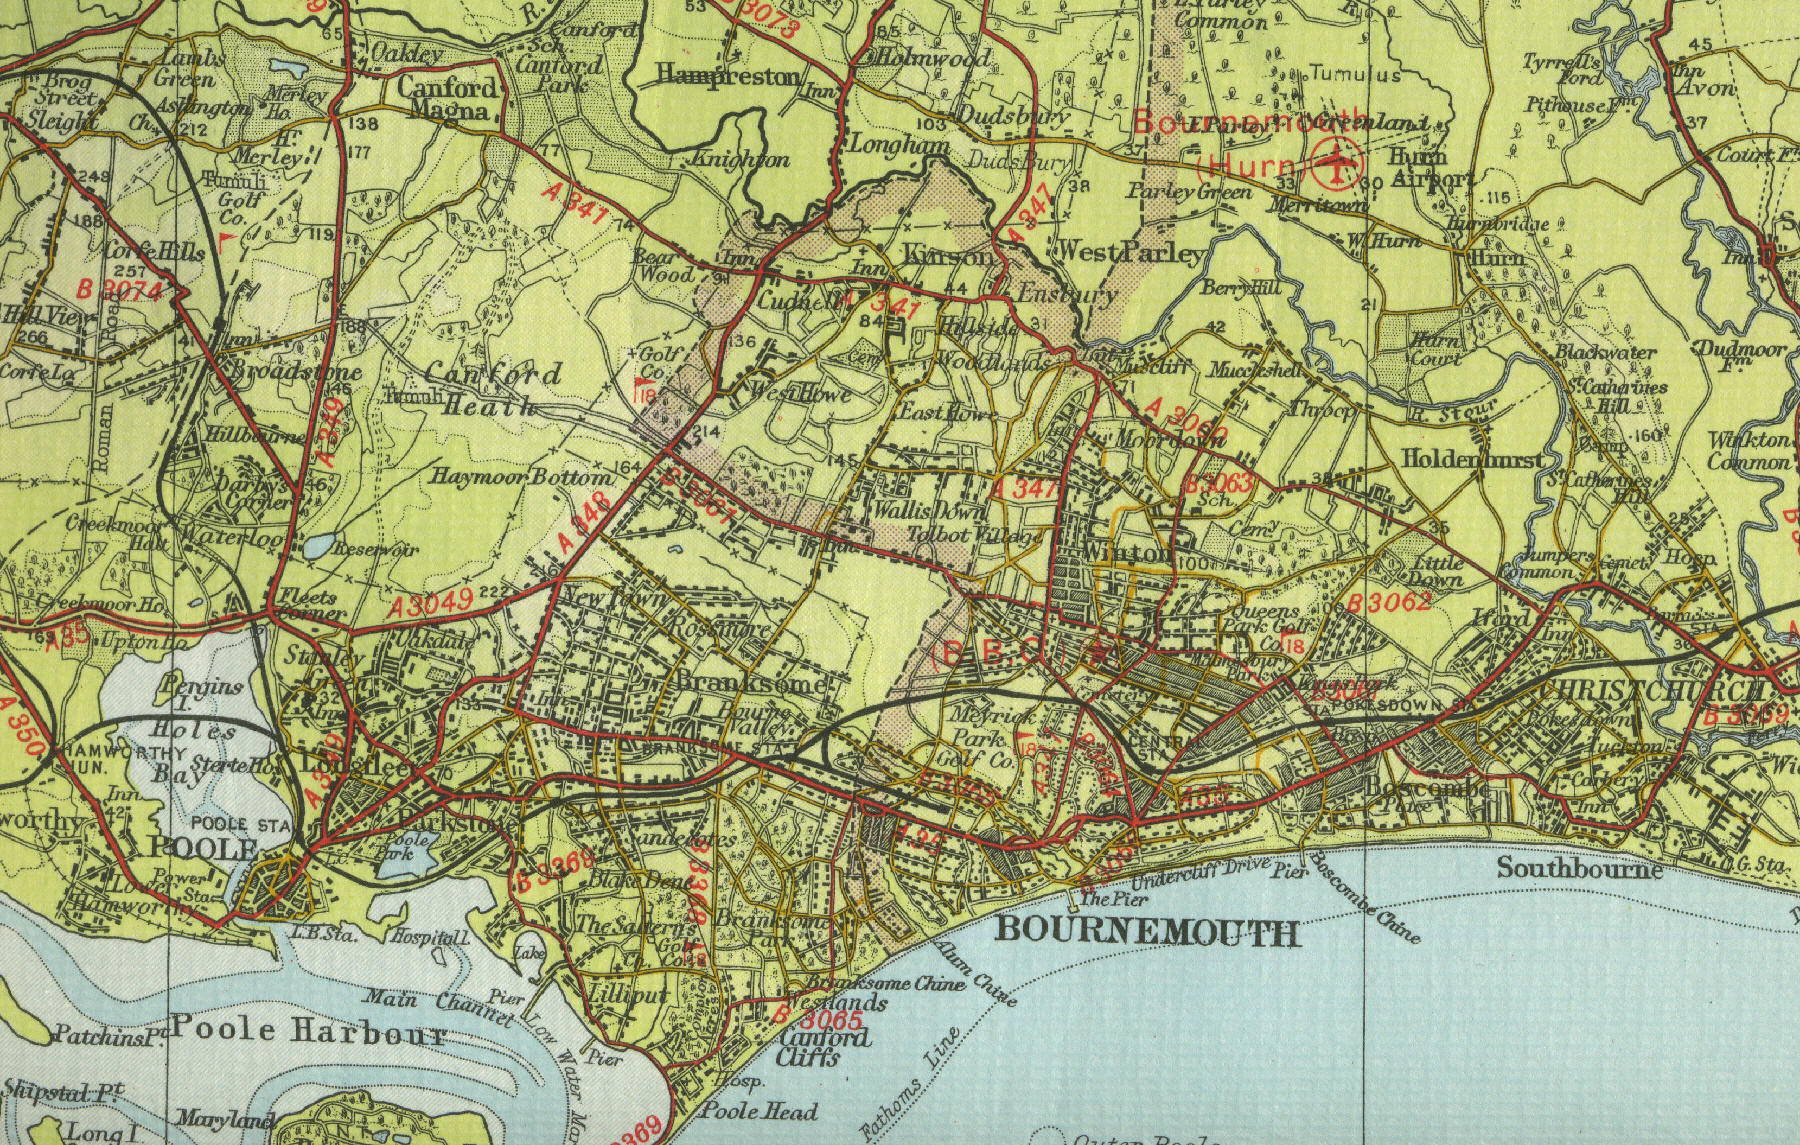 bournemouth town mapjpg map bournemouthjpg